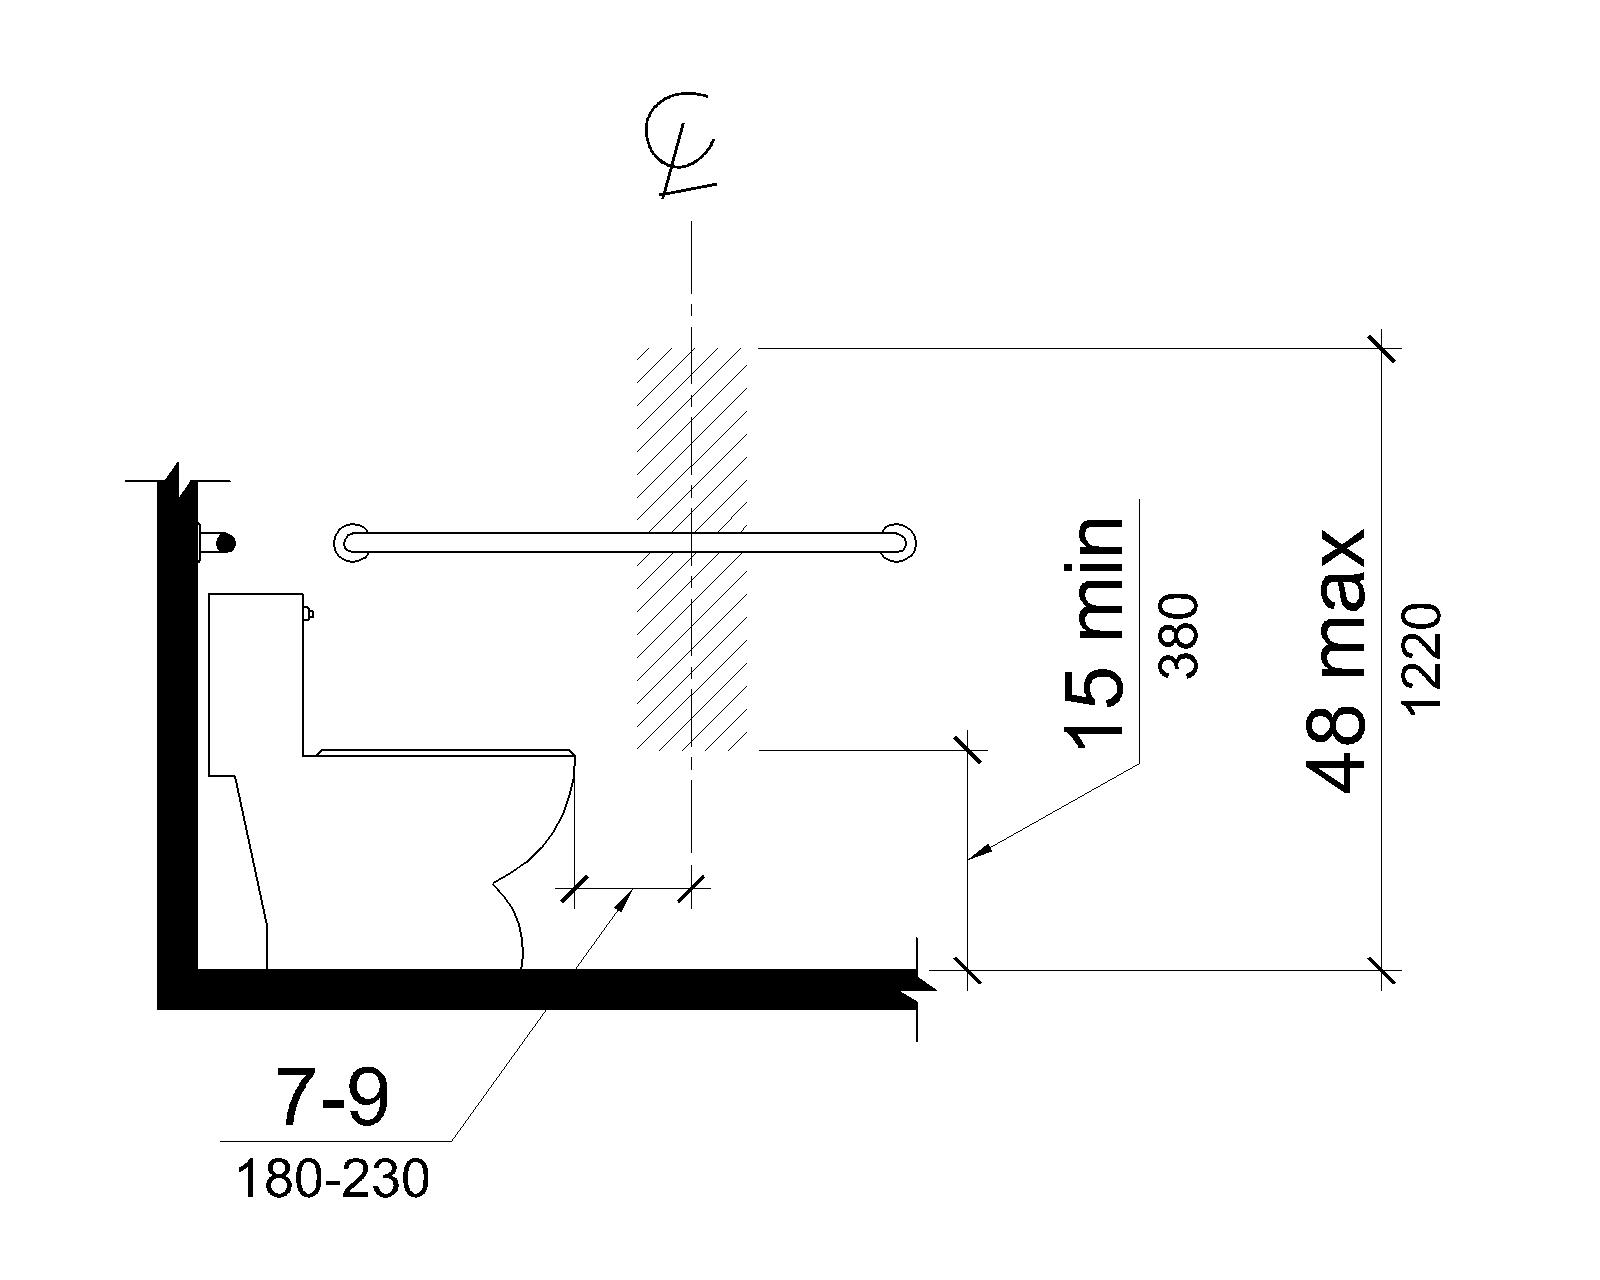 Elevation drawing shows the centerline of the toilet paper dispenser to be 7 to 9 inches (180 to 230 mm) in front of the water closet. The outlet of the dispenser is 15 inches (380 mm) minimum and 48 inches (1220 mm) maximum above the deck surface.